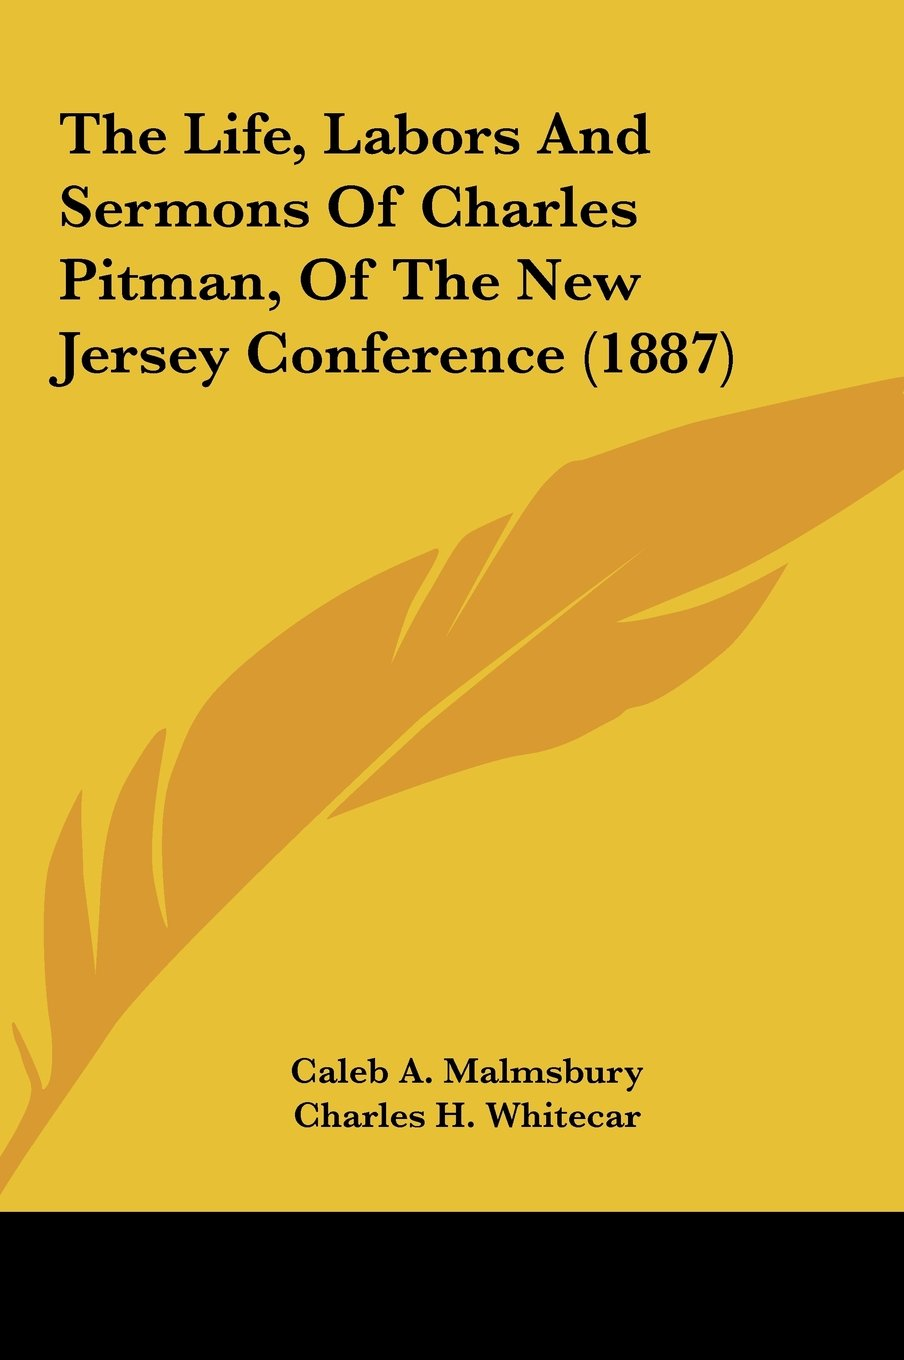 The Life, Labors And Sermons Of Charles Pitman, Of The New Jersey Conference (1887) pdf epub